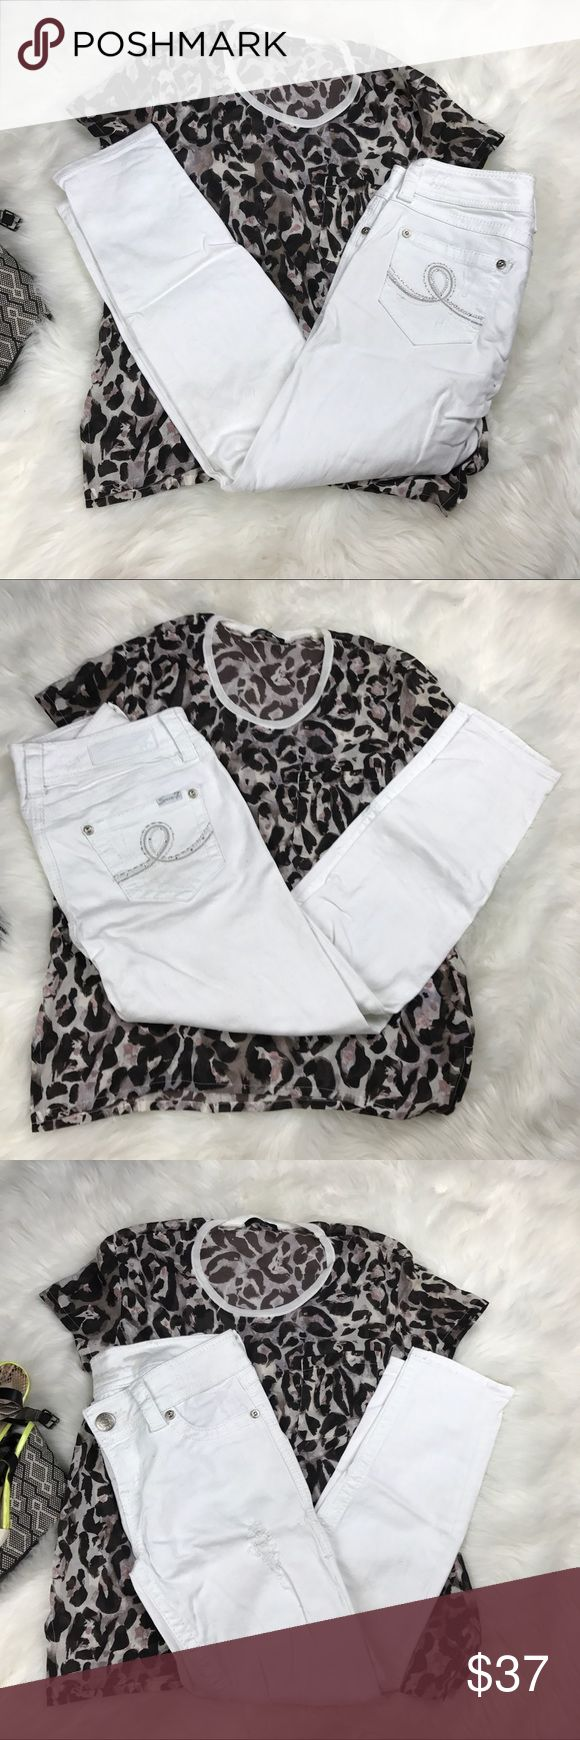 "SEVEN 7 white destroyed ankle skinny jeans Gently worn Seven 7 white destroyed ankle skinny jeans, 9"" rise, 26"" length. Great for the summer! NWT Buttersoft camo tank top, PLUS SIZE, super soft and comfortable. Wear with jeans or shorts & sandals.   Pre-Loved  • BUNDLE FOR 10% OFF • NO TRADES • 5 star rating • Fast Shipper • 200+ sales  • Smoke free home • 100% authentic   Tags: Seven, 7, jeans, white pants skinny jeans Seven7 Jeans Skinny"